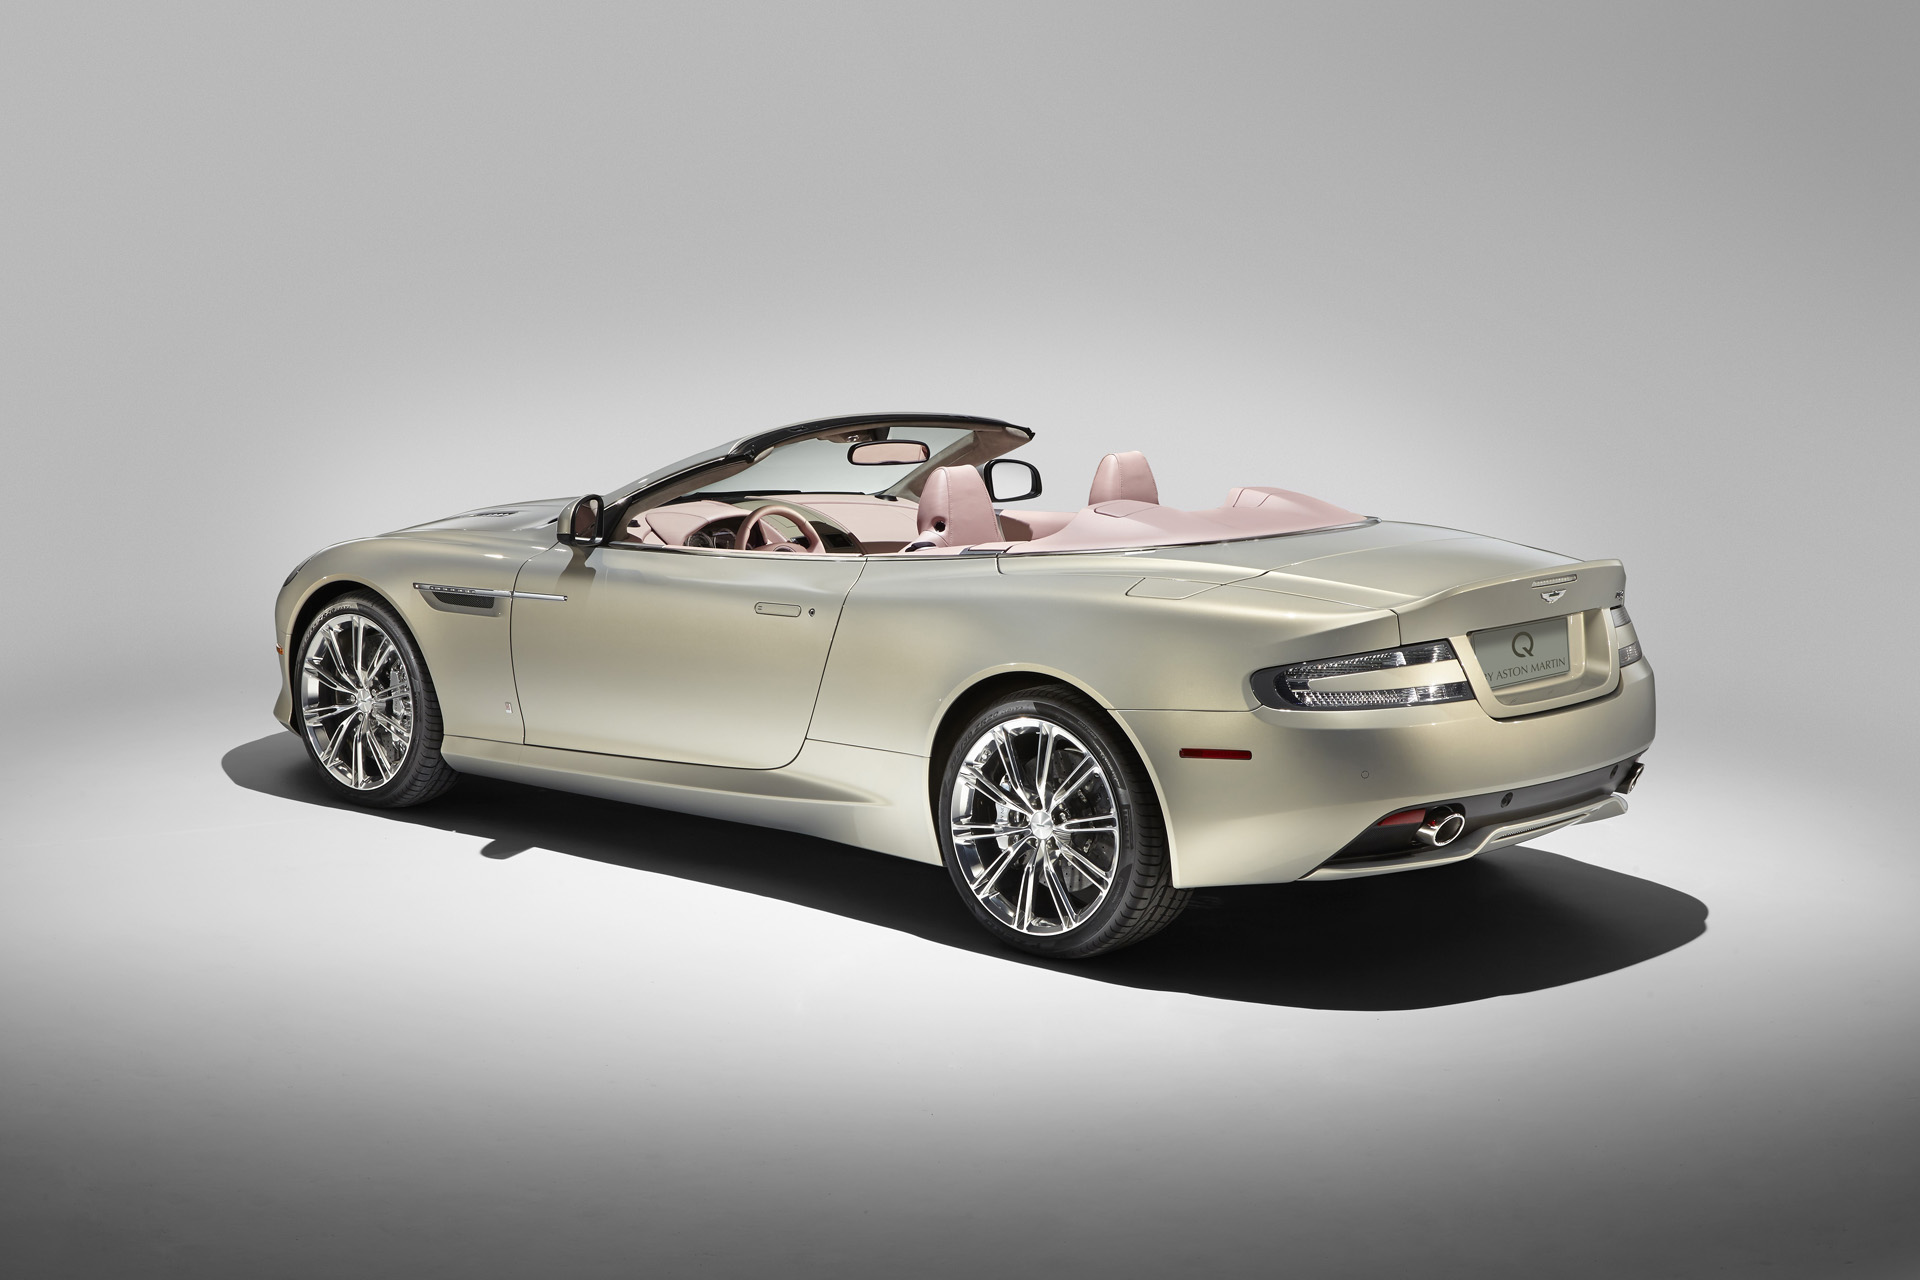 Q By Aston Martin Showing Four New Models At Pebble Beach